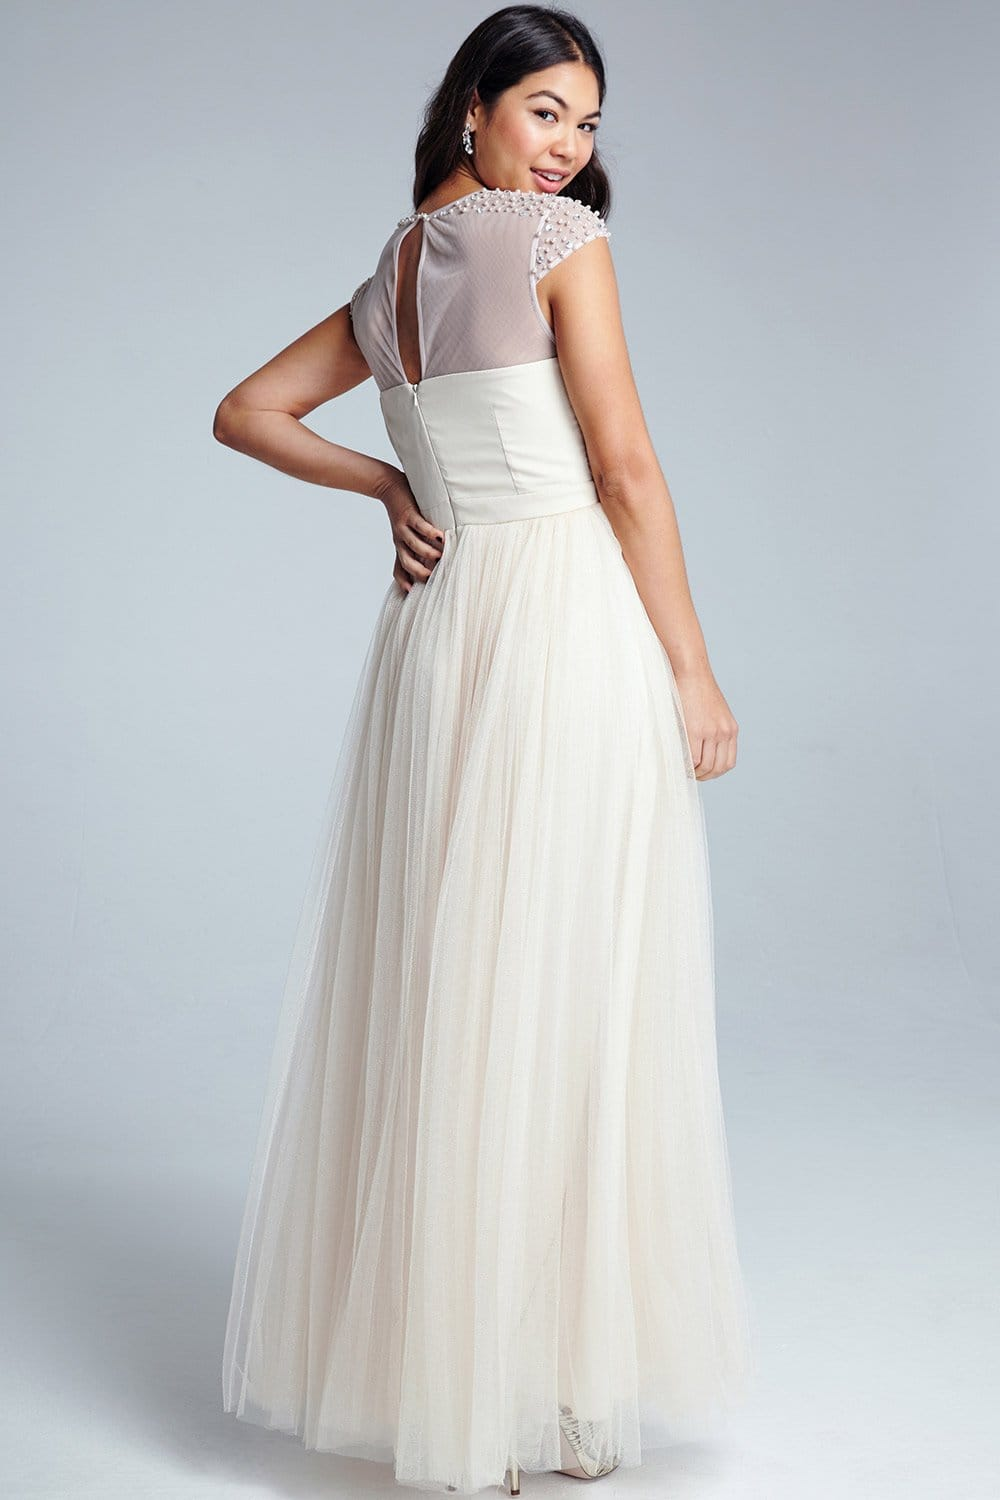 Nude Beaded Maxi Dress - from Little Mistress UK